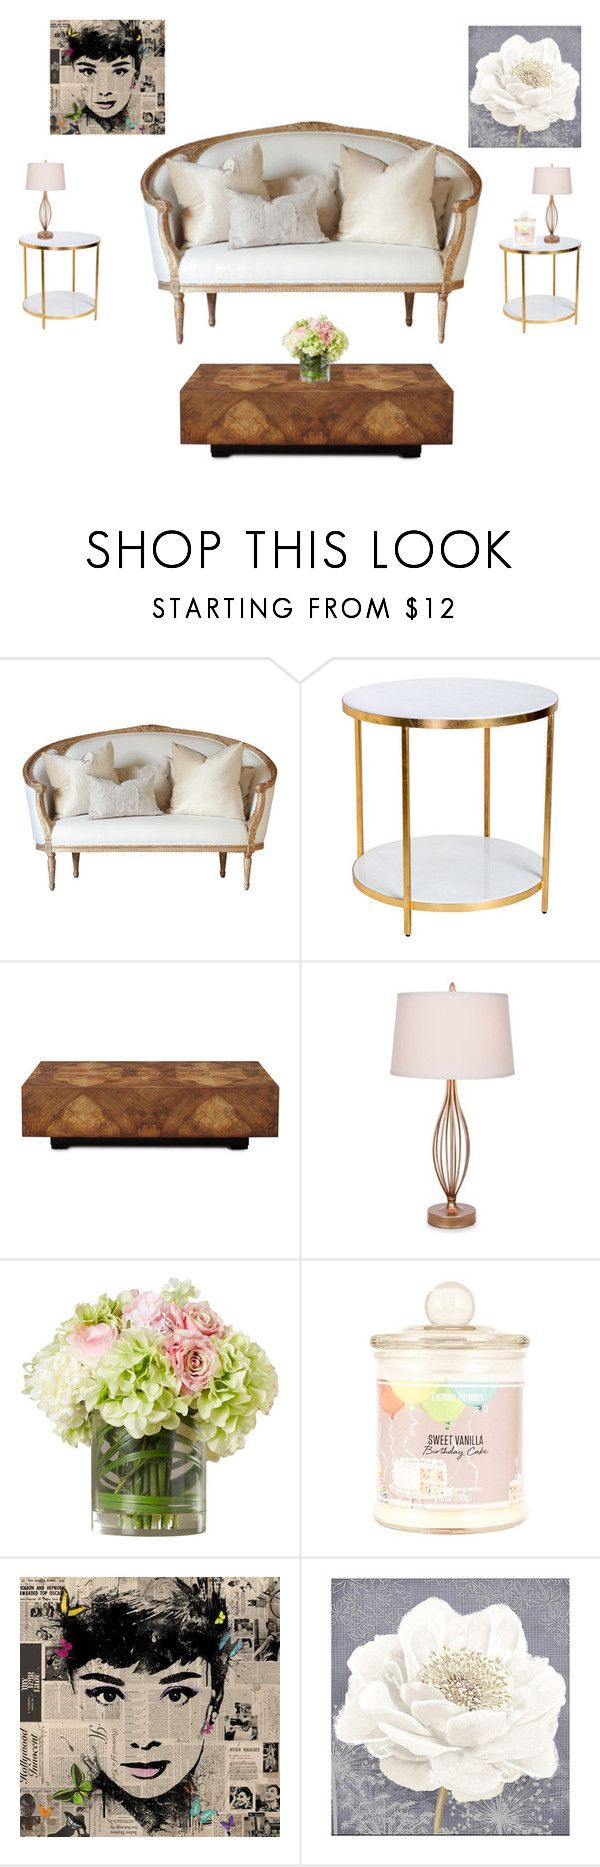 """""""Vintage- whtie gold Sitting space"""" by toriher on Polyvore featuring interior, interiors, interior design, home, home decor, interior decorating, John-Richard, Catalina, Graham & Brown and vintage"""